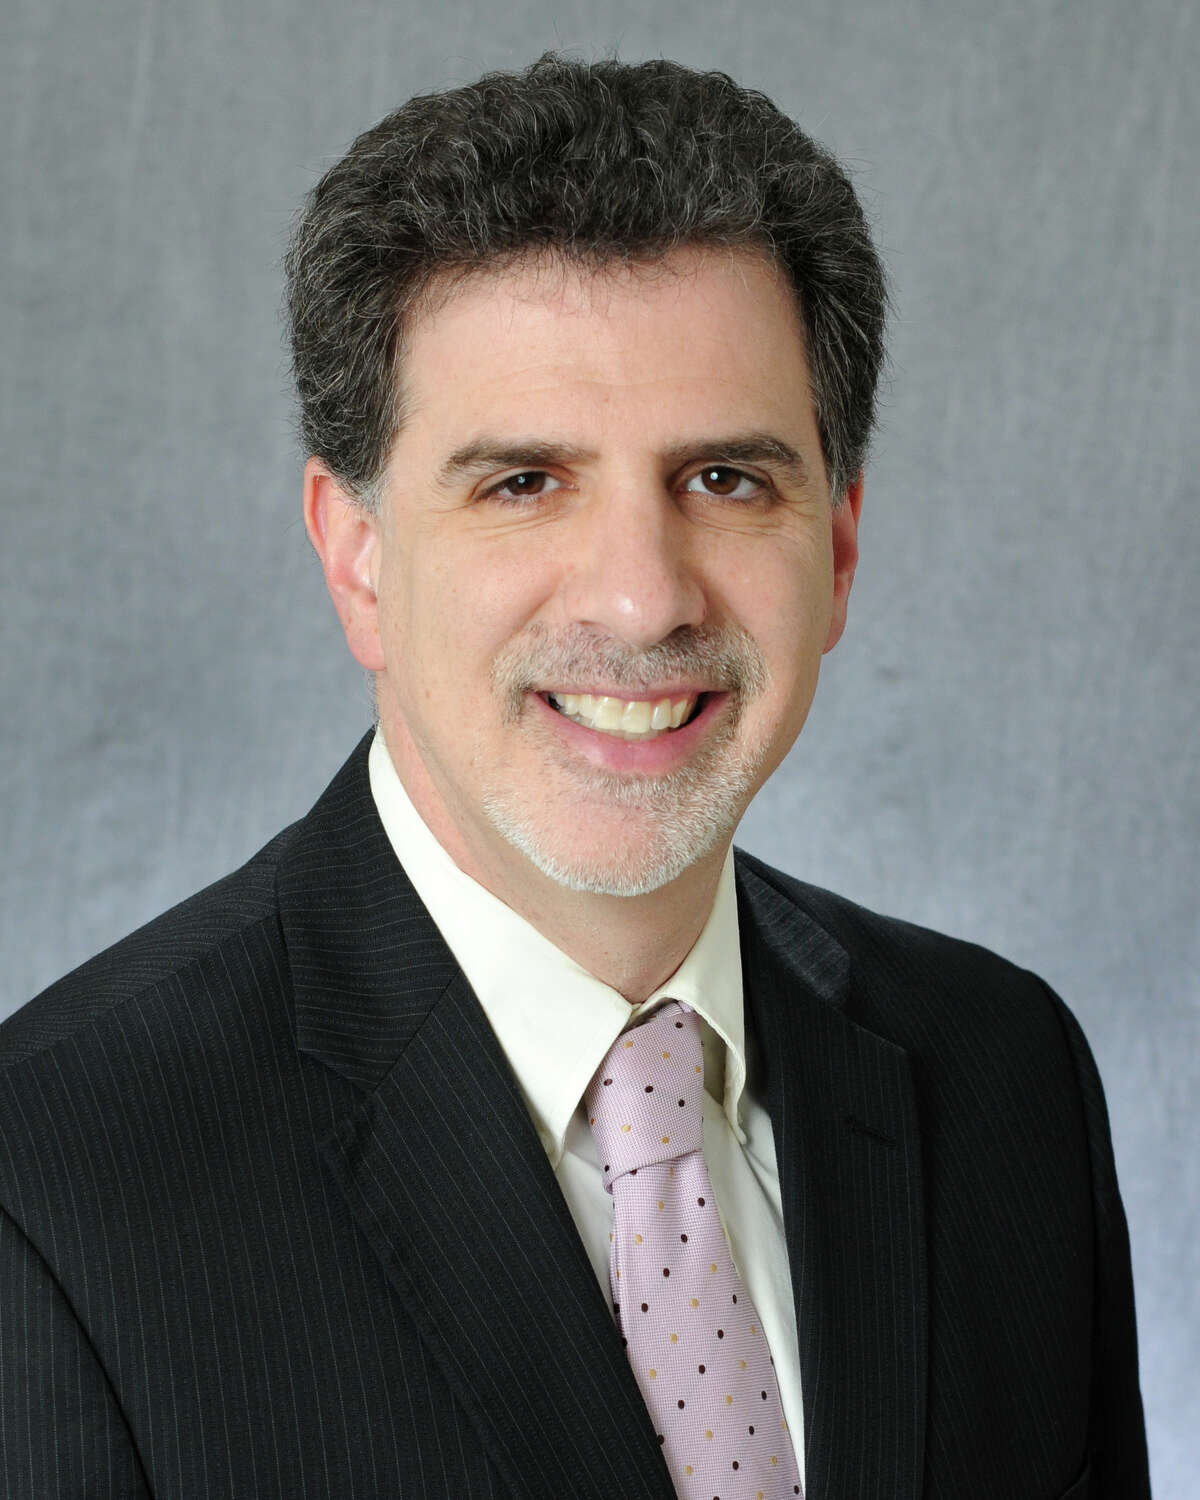 Paul Fronstin is director of health research for the Employee Benefit Research Institute.